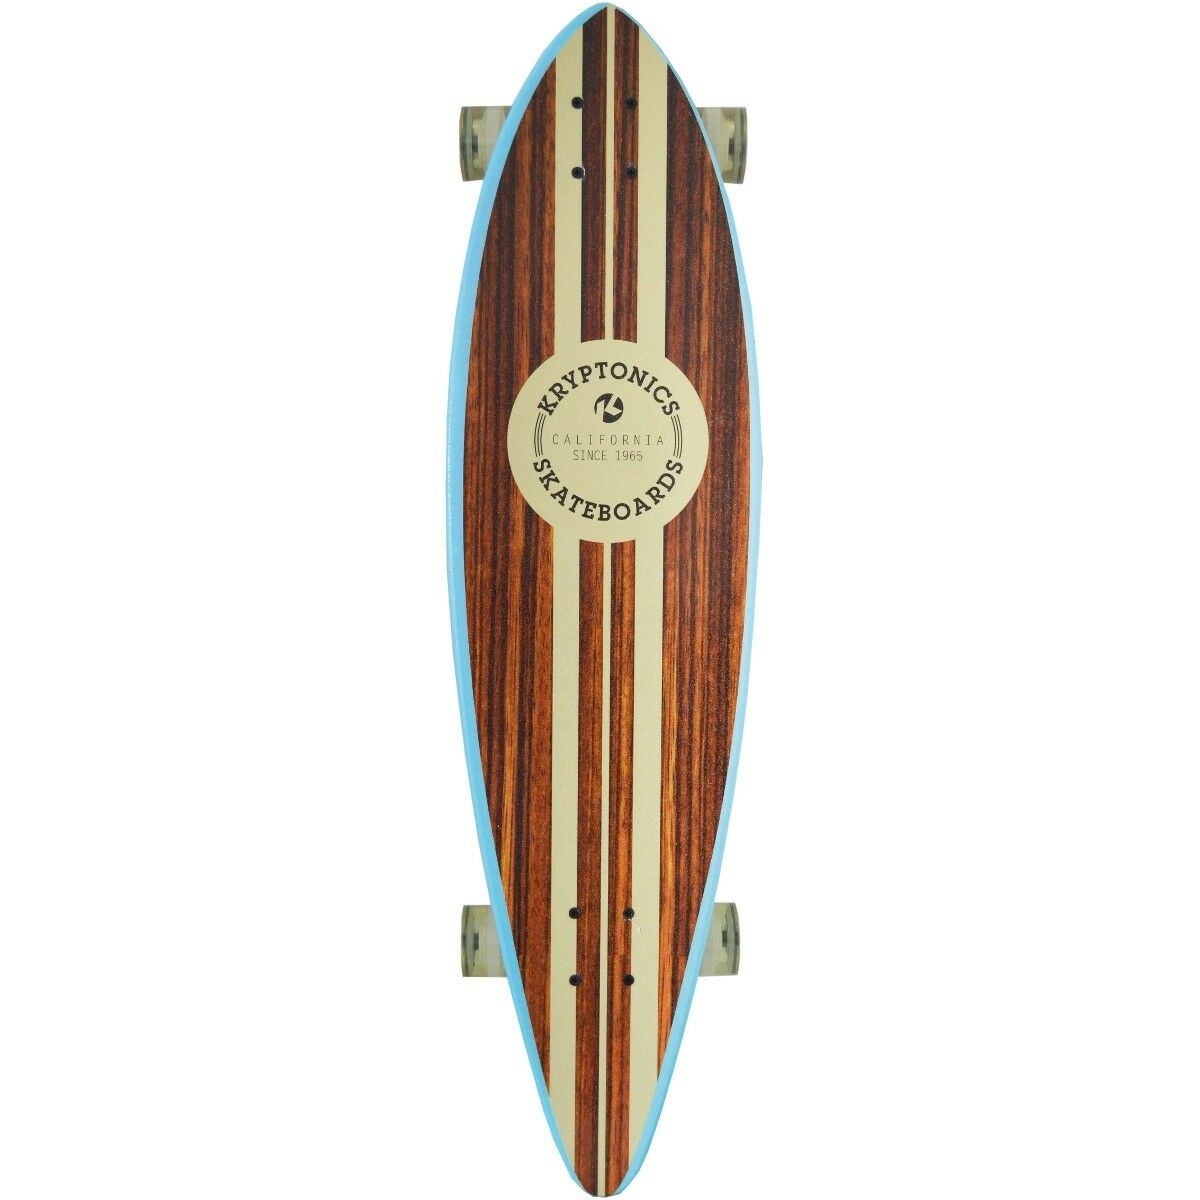 Kryptonics Longboard California Series Top Rank